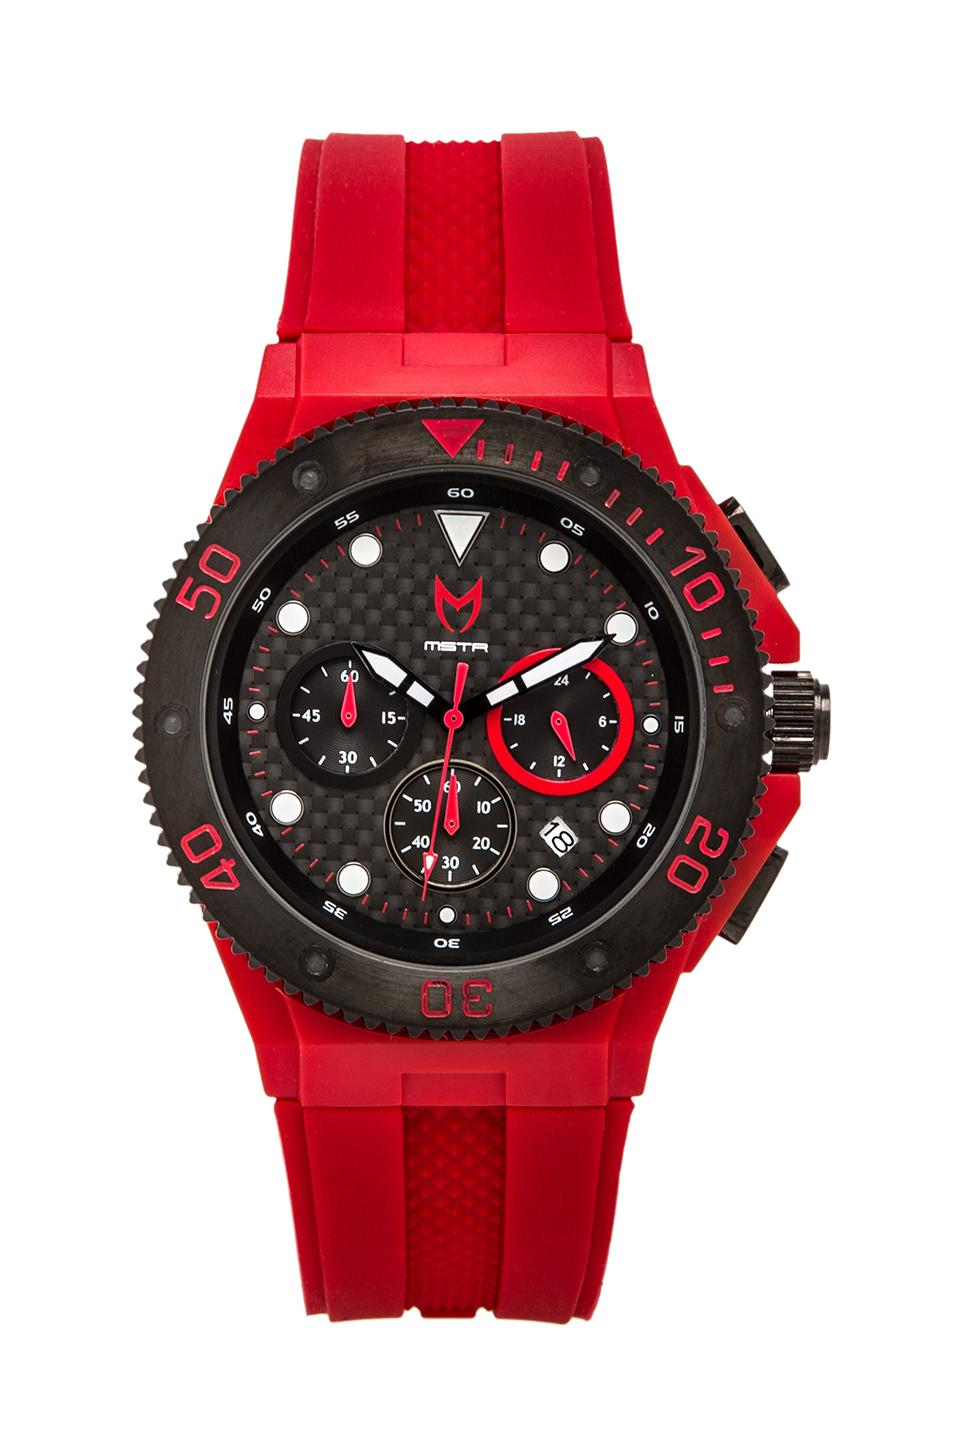 Meister Ambassador in Red